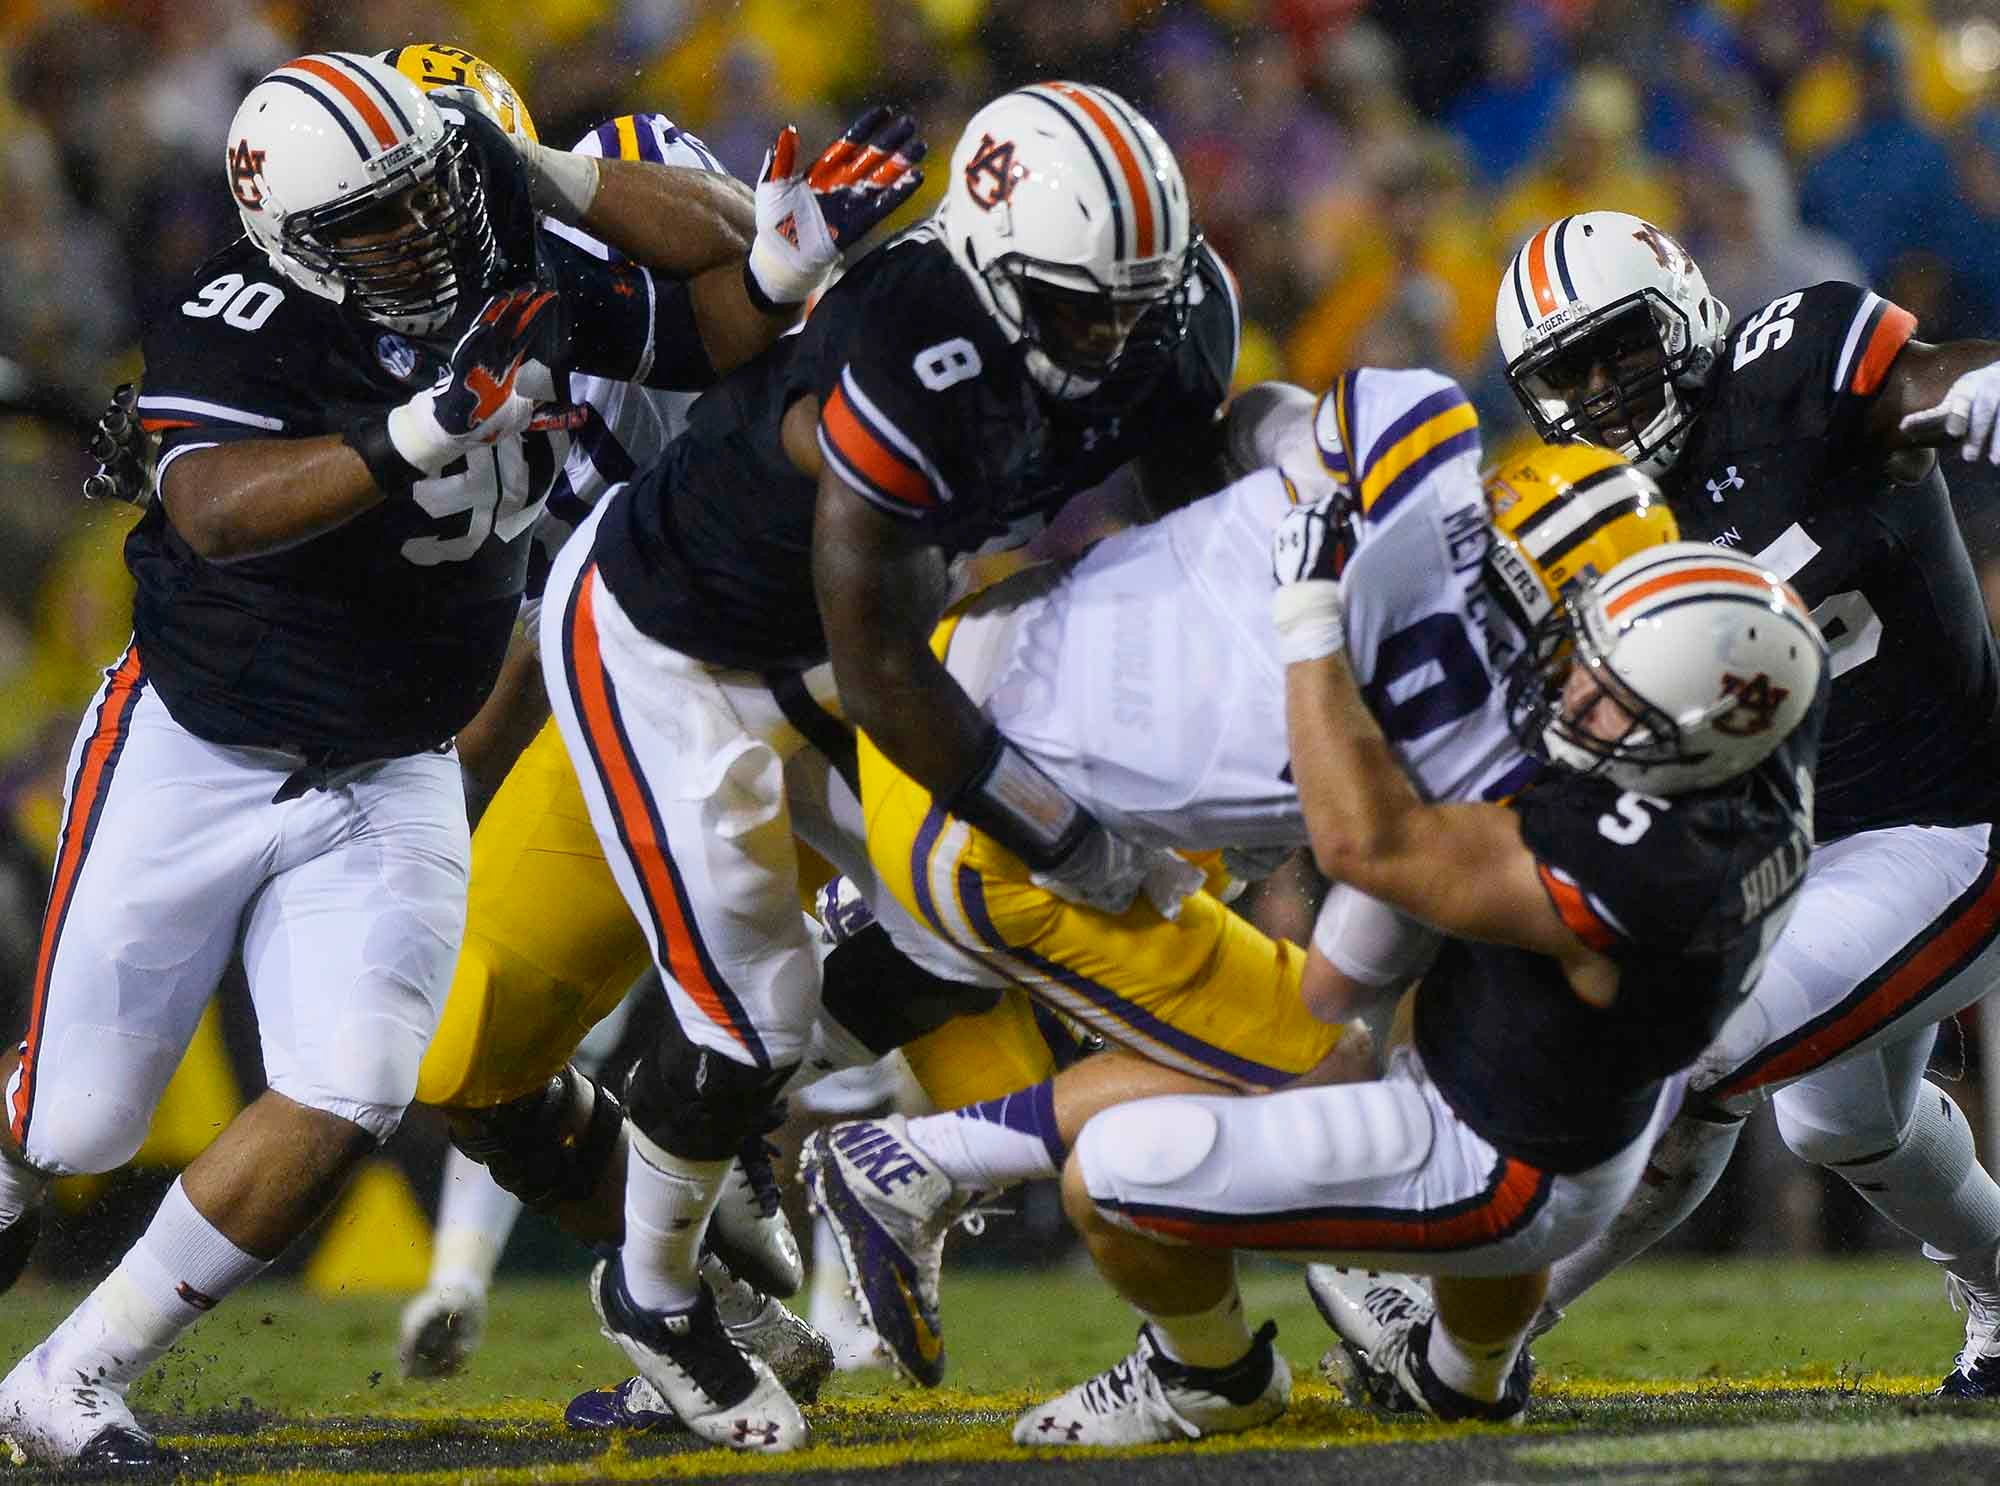 LSU quarterback Zach Mettenberger gets sacked by the Auburn defense. Mettenberger has gotten off to a good start this season